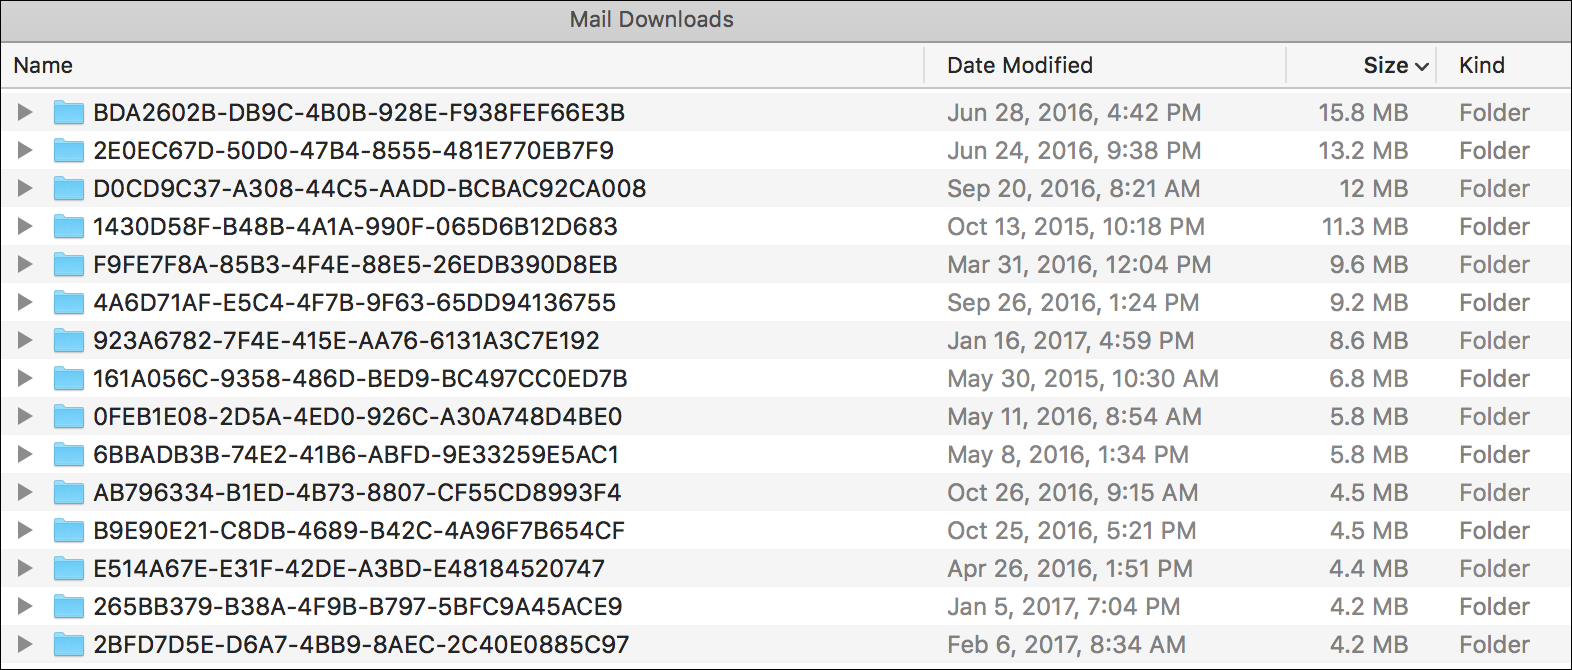 Mail Downloads